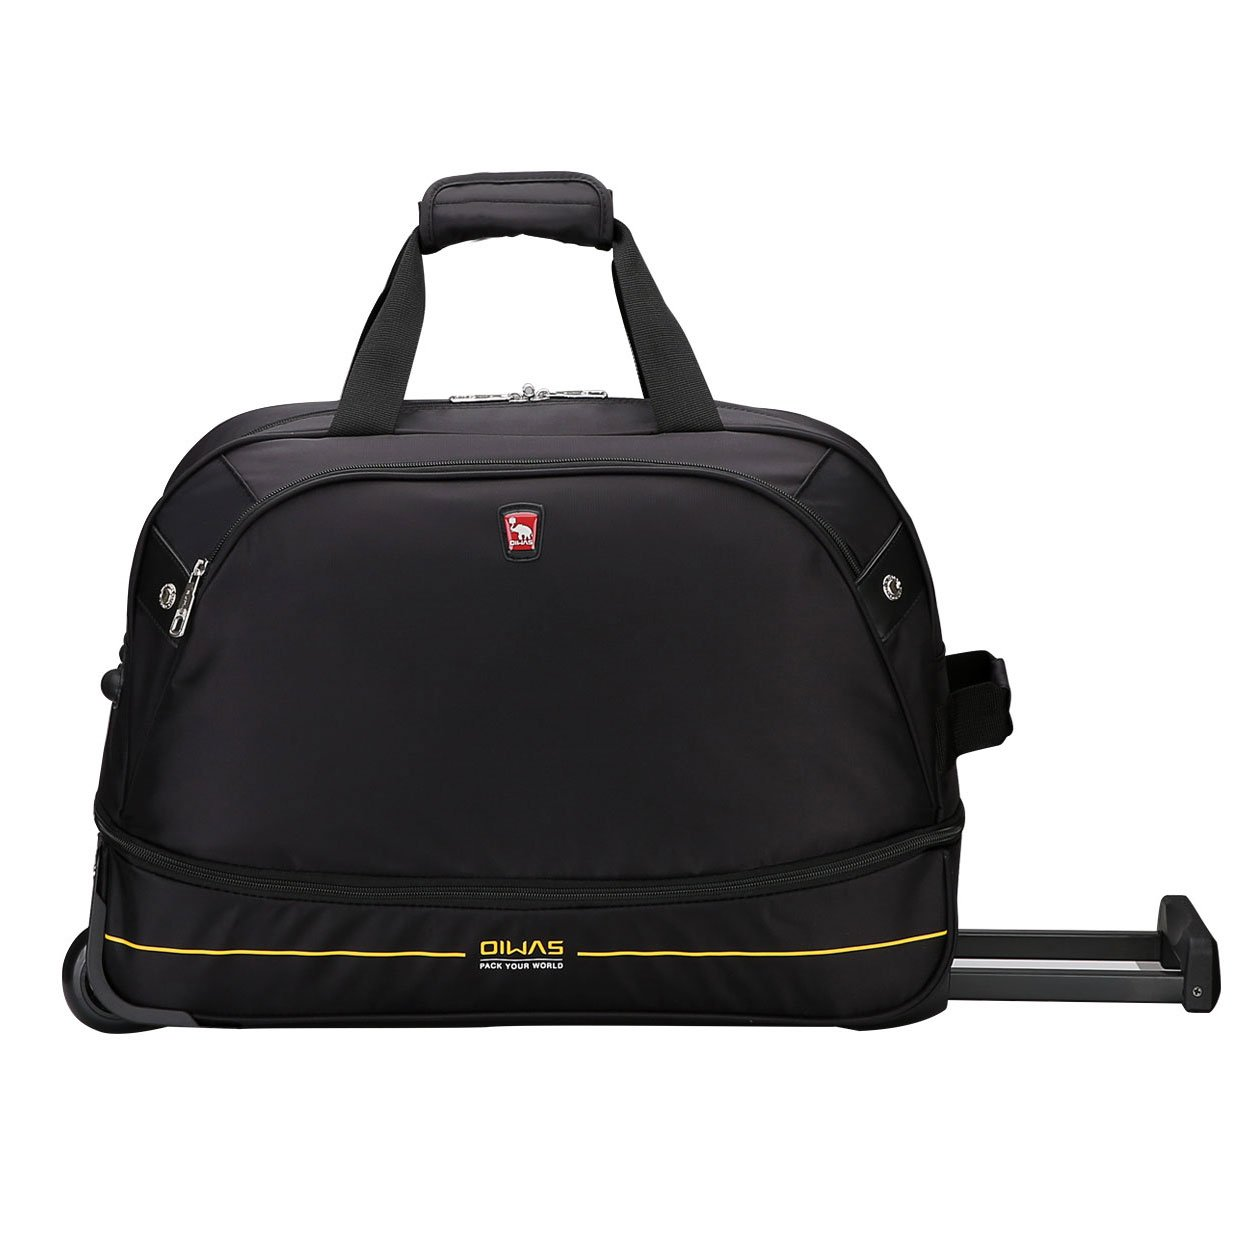 OIWAS Black Rolling Duffle Bag Wheeled Carry on Collapsible Travel Luggage Large Storage 56L plus 10L Expanded for Women and Men